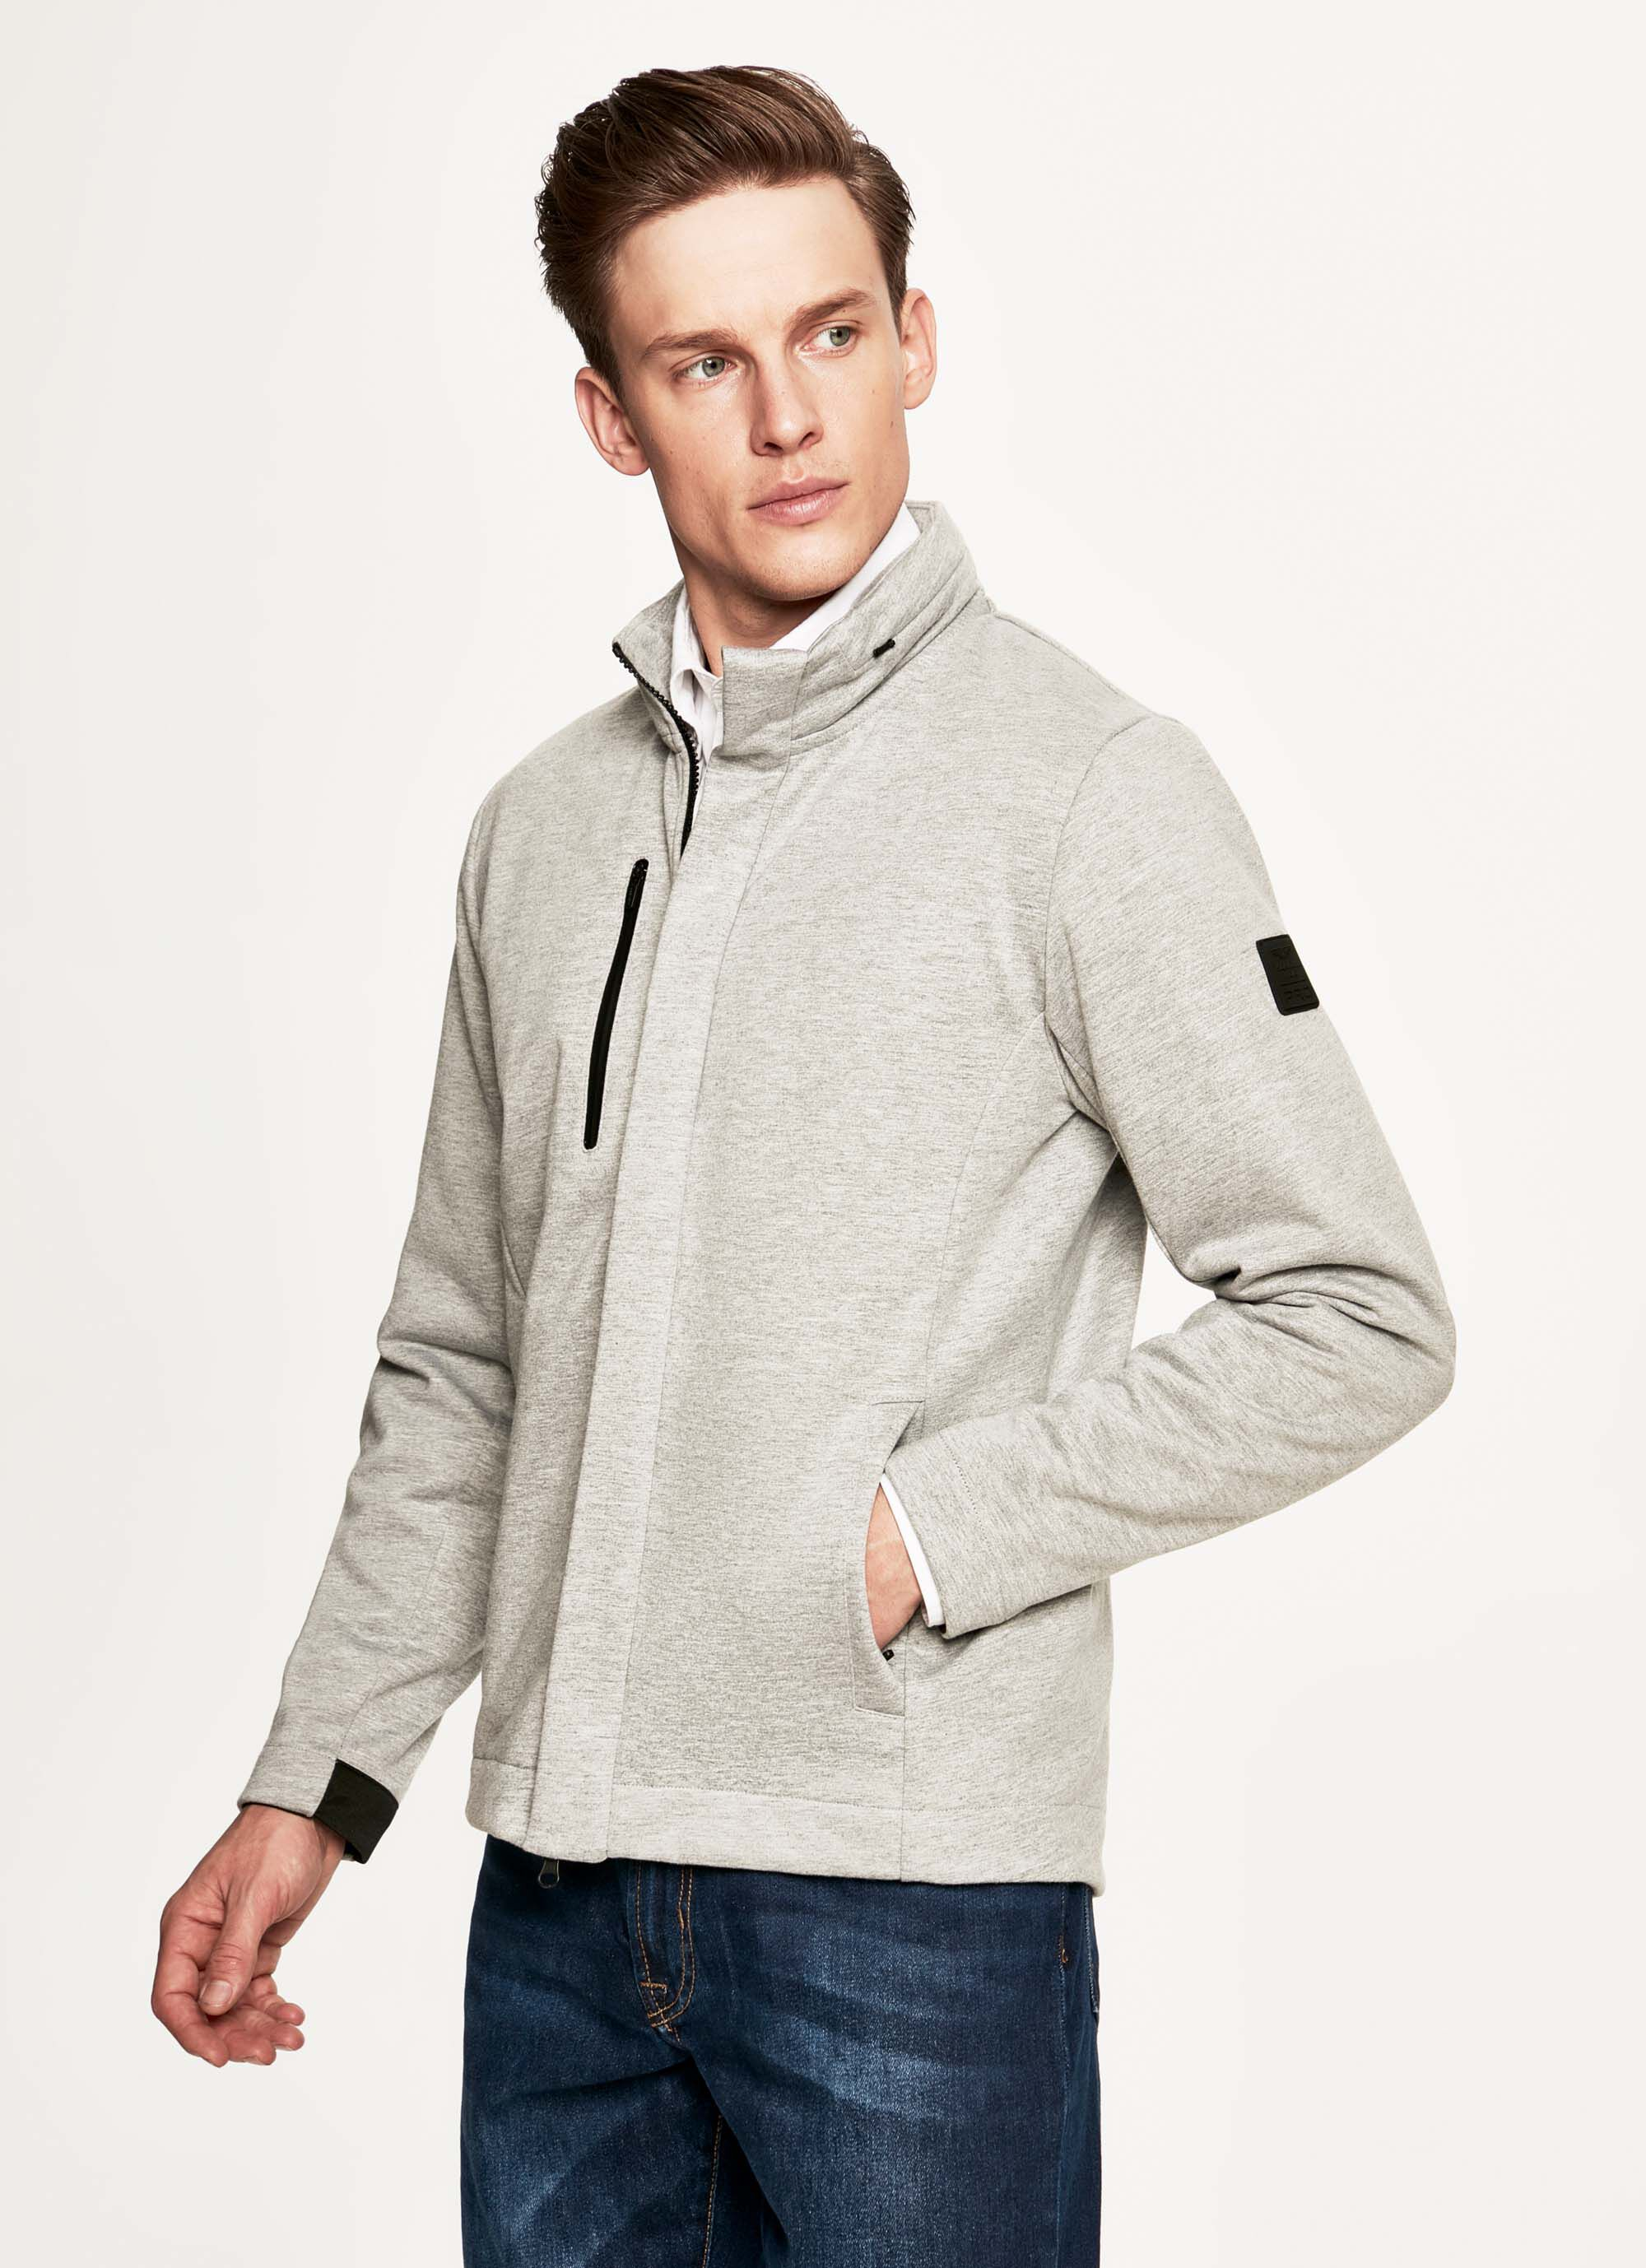 aston martin racing pro men's cotton-blend bonded jersey zip front sweater | 2x-large | pearl grey